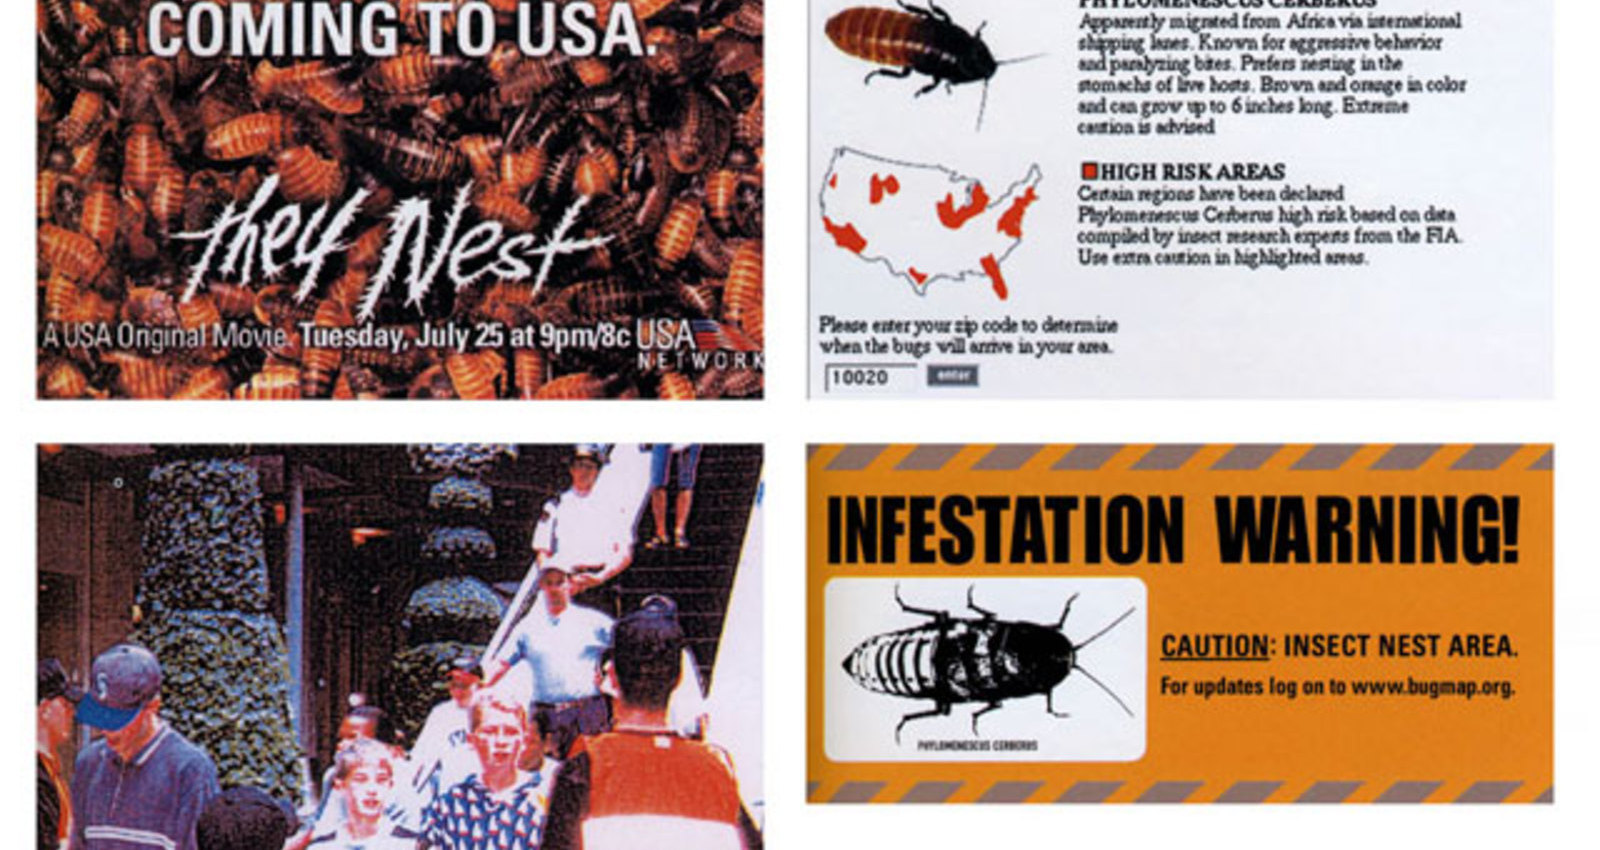 Infestation Campaign